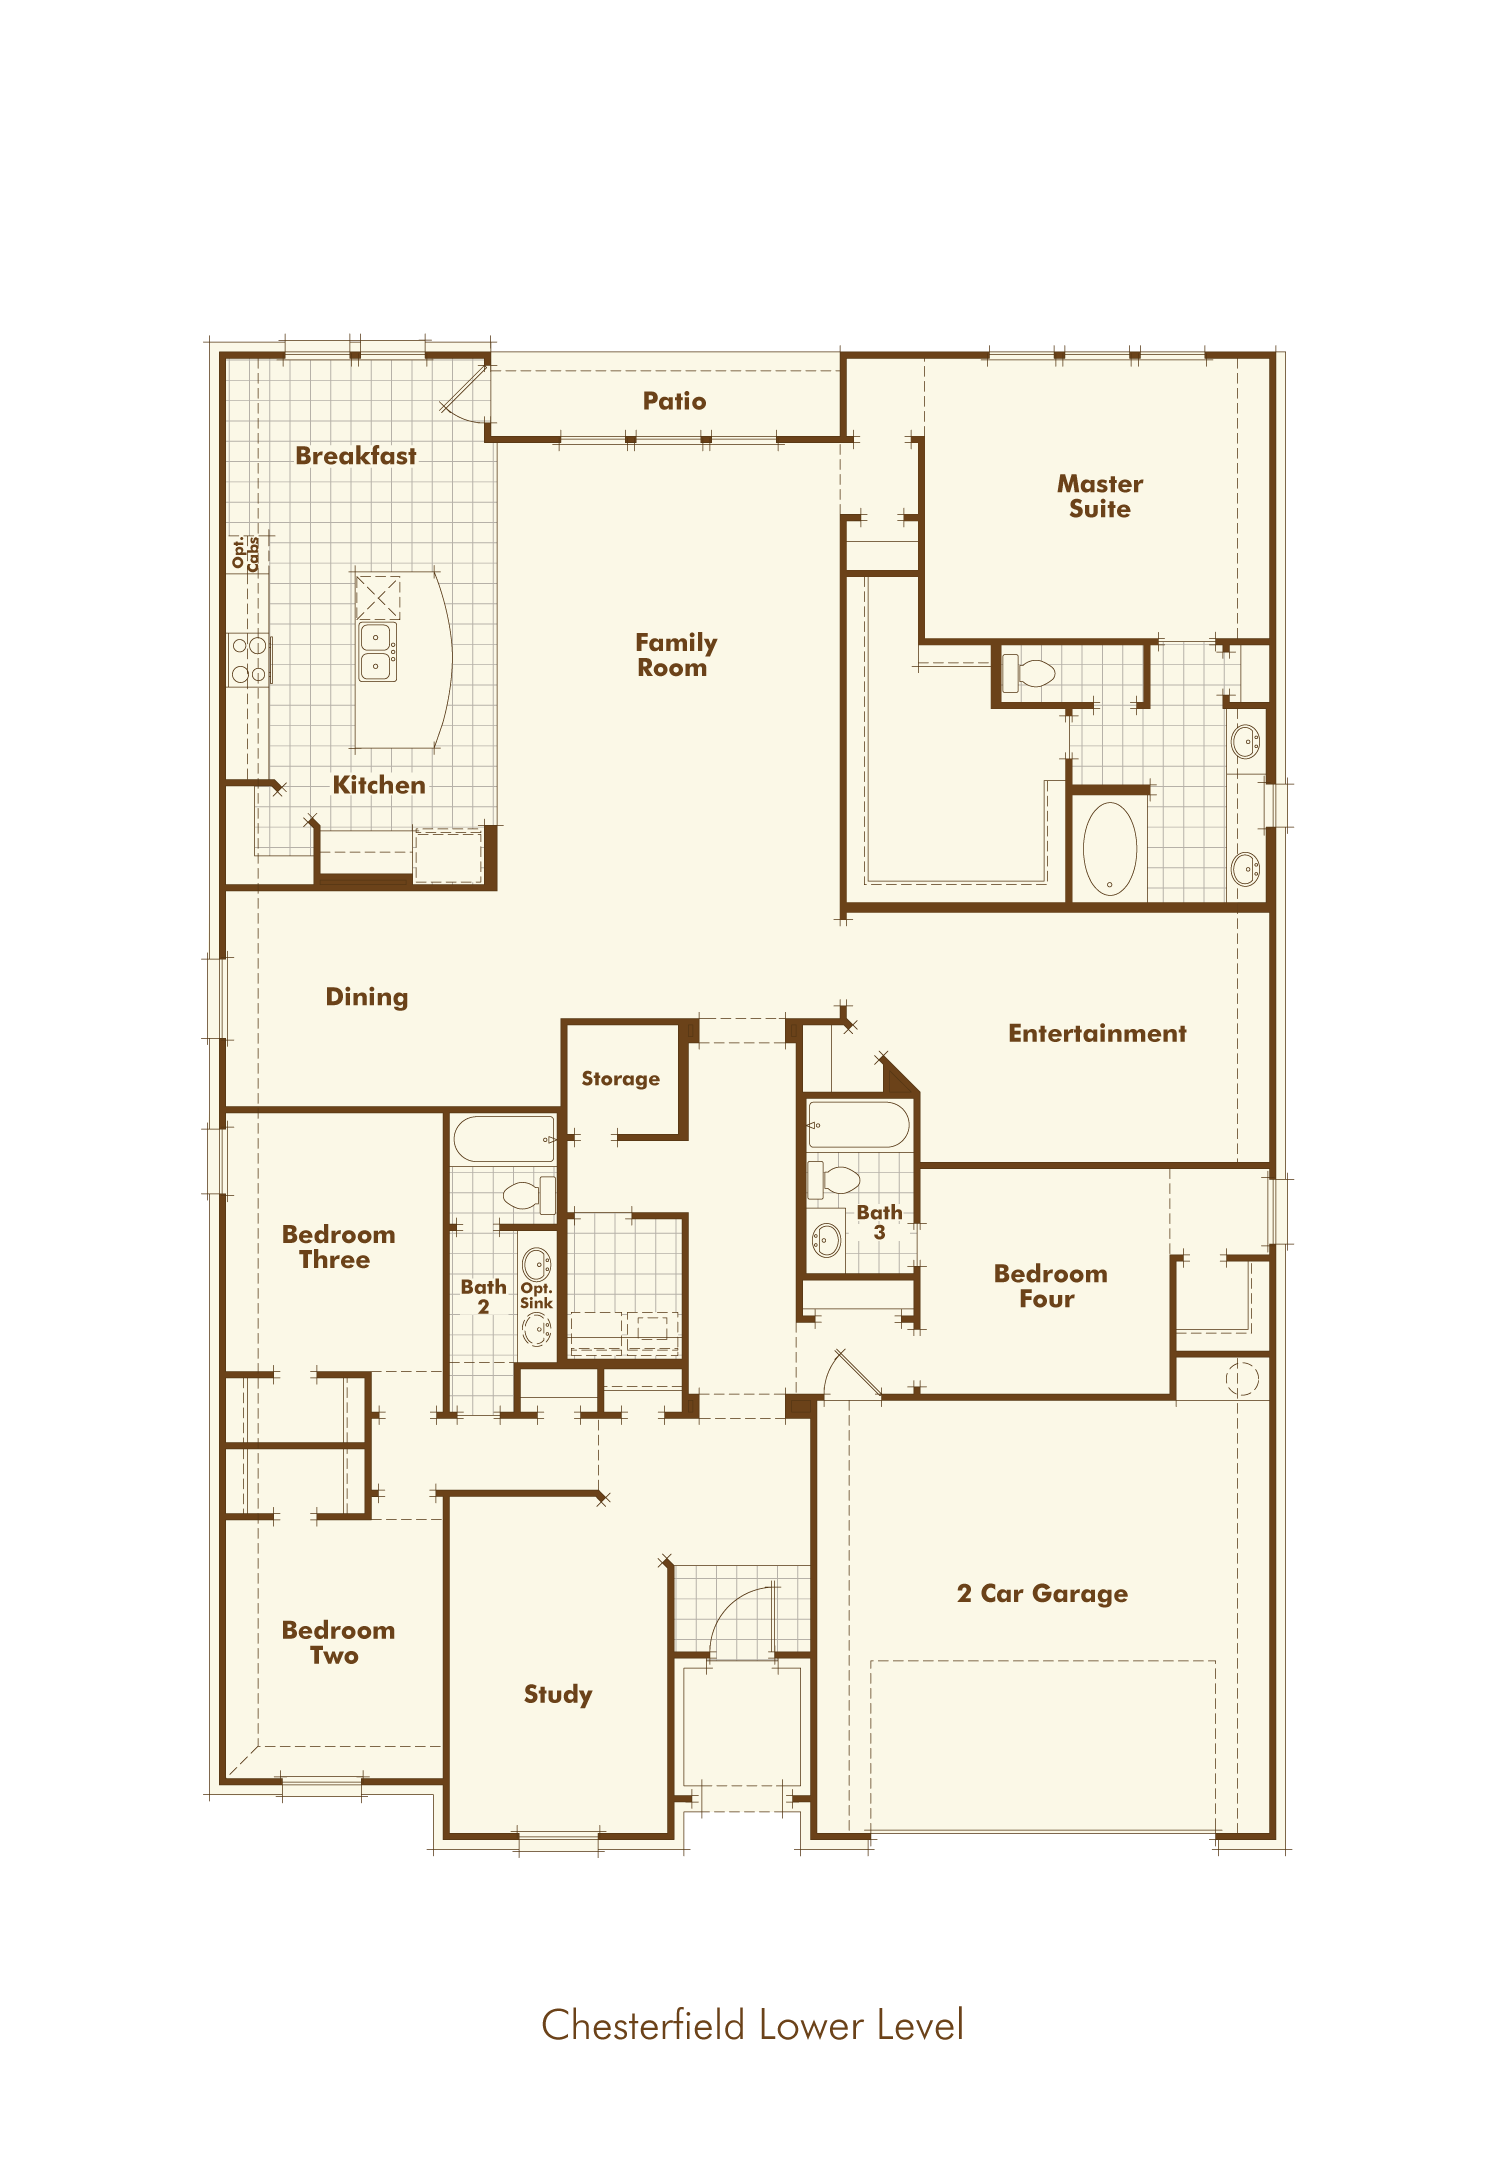 New Home Plan Chesterfield in San Antonio, TX 78254 Ranch House Floor Plans Diions on loft house plans, texas ranch house plans, 4-bedroom ranch house plans, ranch country house plans, western ranch house plans, walkout ranch house plans, ranch house with basement, 8 bedroom ranch house plans, ranch house plans with porches, luxury ranch home plans, luxury house plans, one story house plans, ranch house layout, classic ranch house plans, rustic ranch house plans, ranch house design, unique ranch house plans, ranch house with garage, ranch house plans awesome, ranch house kitchens,